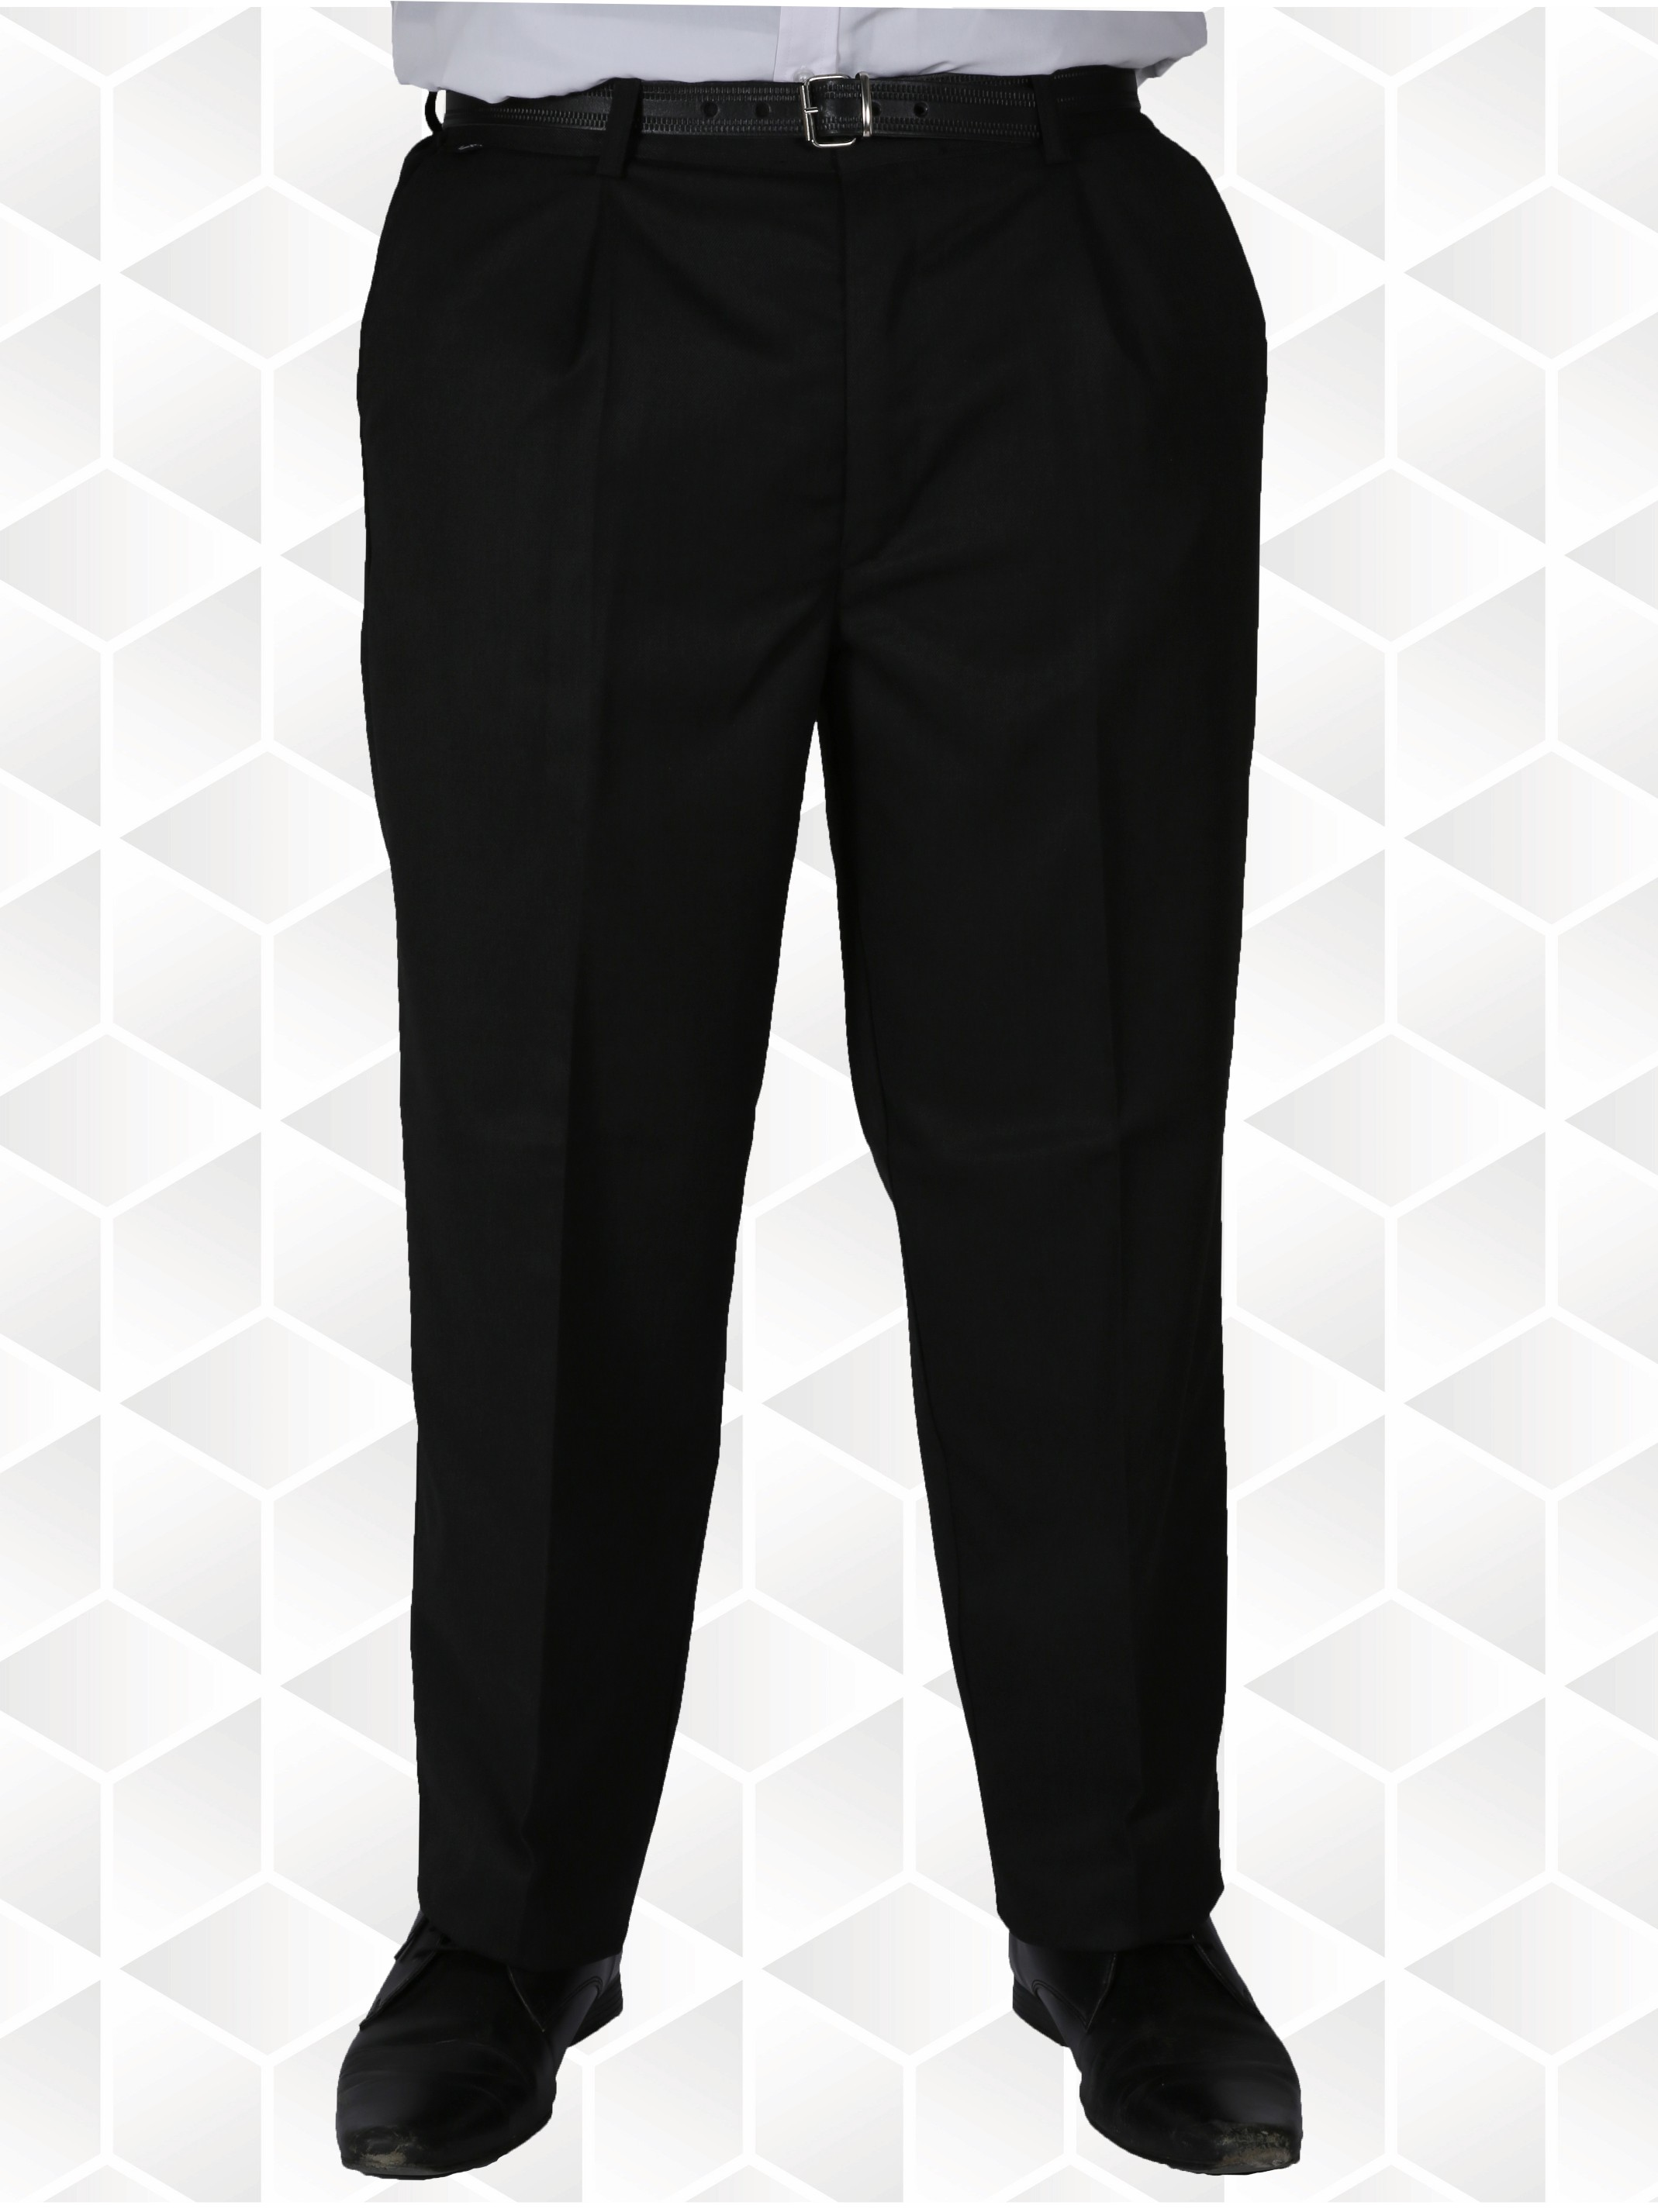 941cc9e7e9c Boys Green Label Trousers (Extra Sturdy Fit) - Innovation Schoolwear